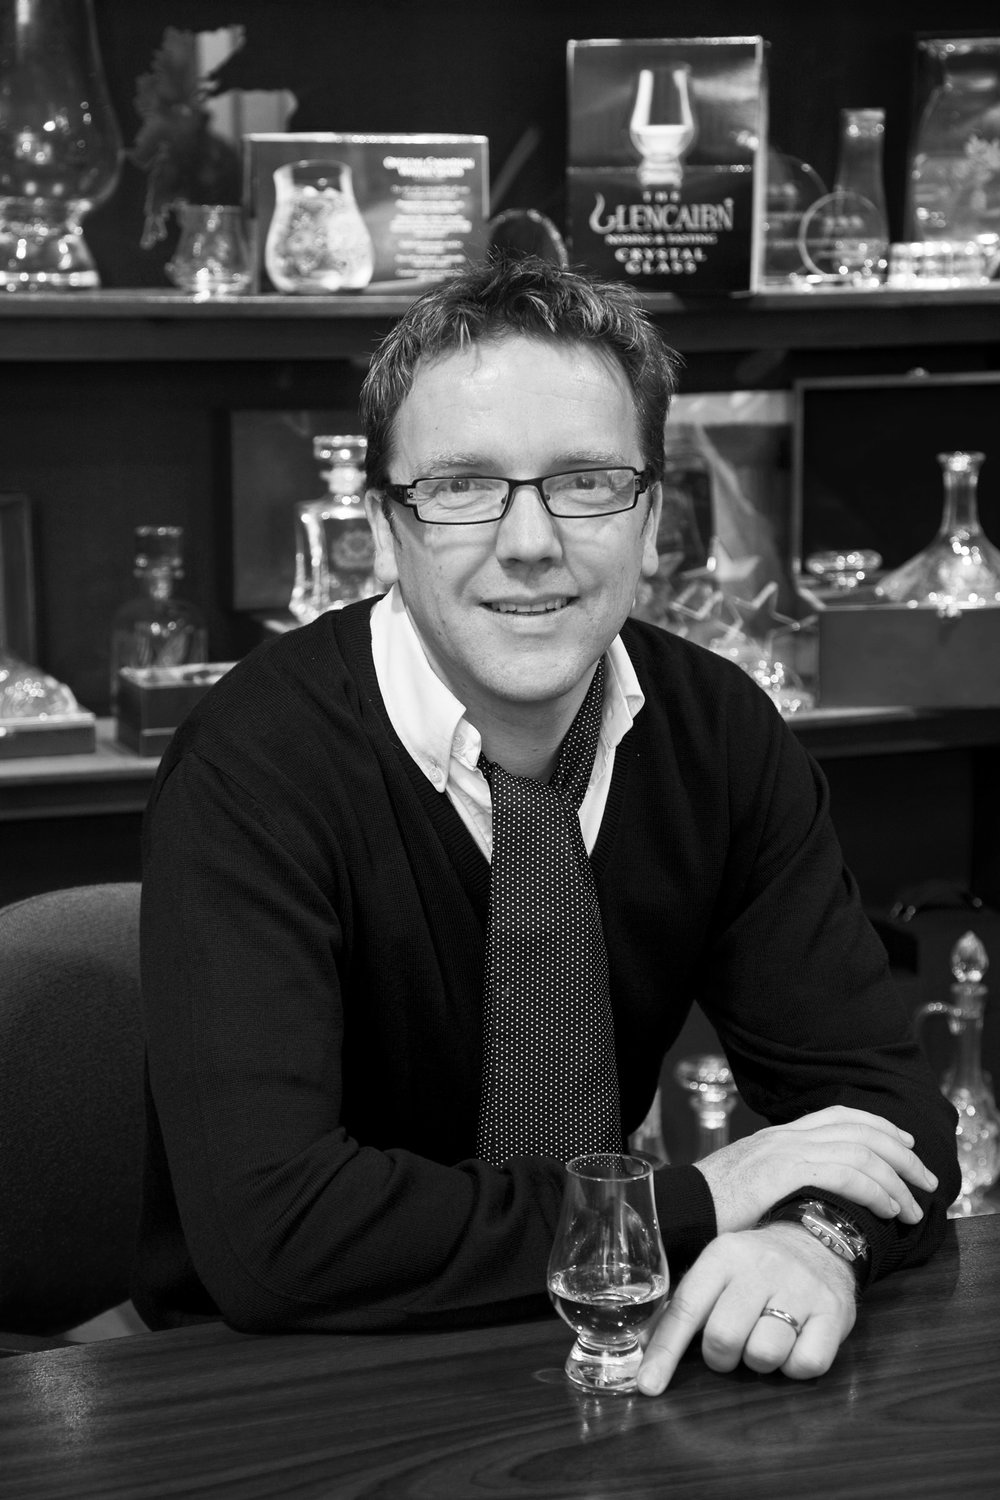 Paul Davidson - Managing Director of Glencairn Crystal